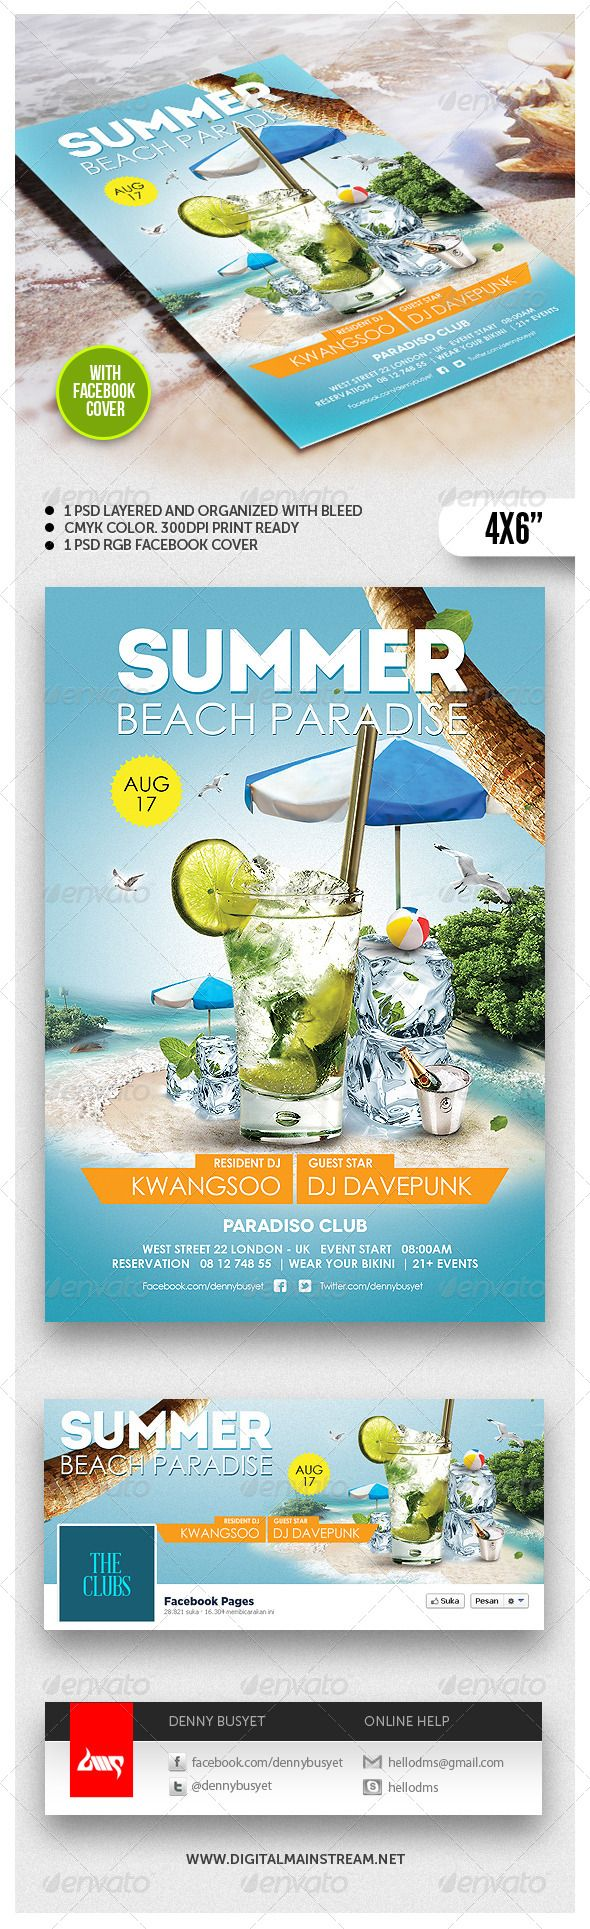 Summer Beach Paradise Flyer Template Download PSD : http://graphicriver.net/item/summer-beach-paradise-flyer-template/4827004?ref=kwangsoo